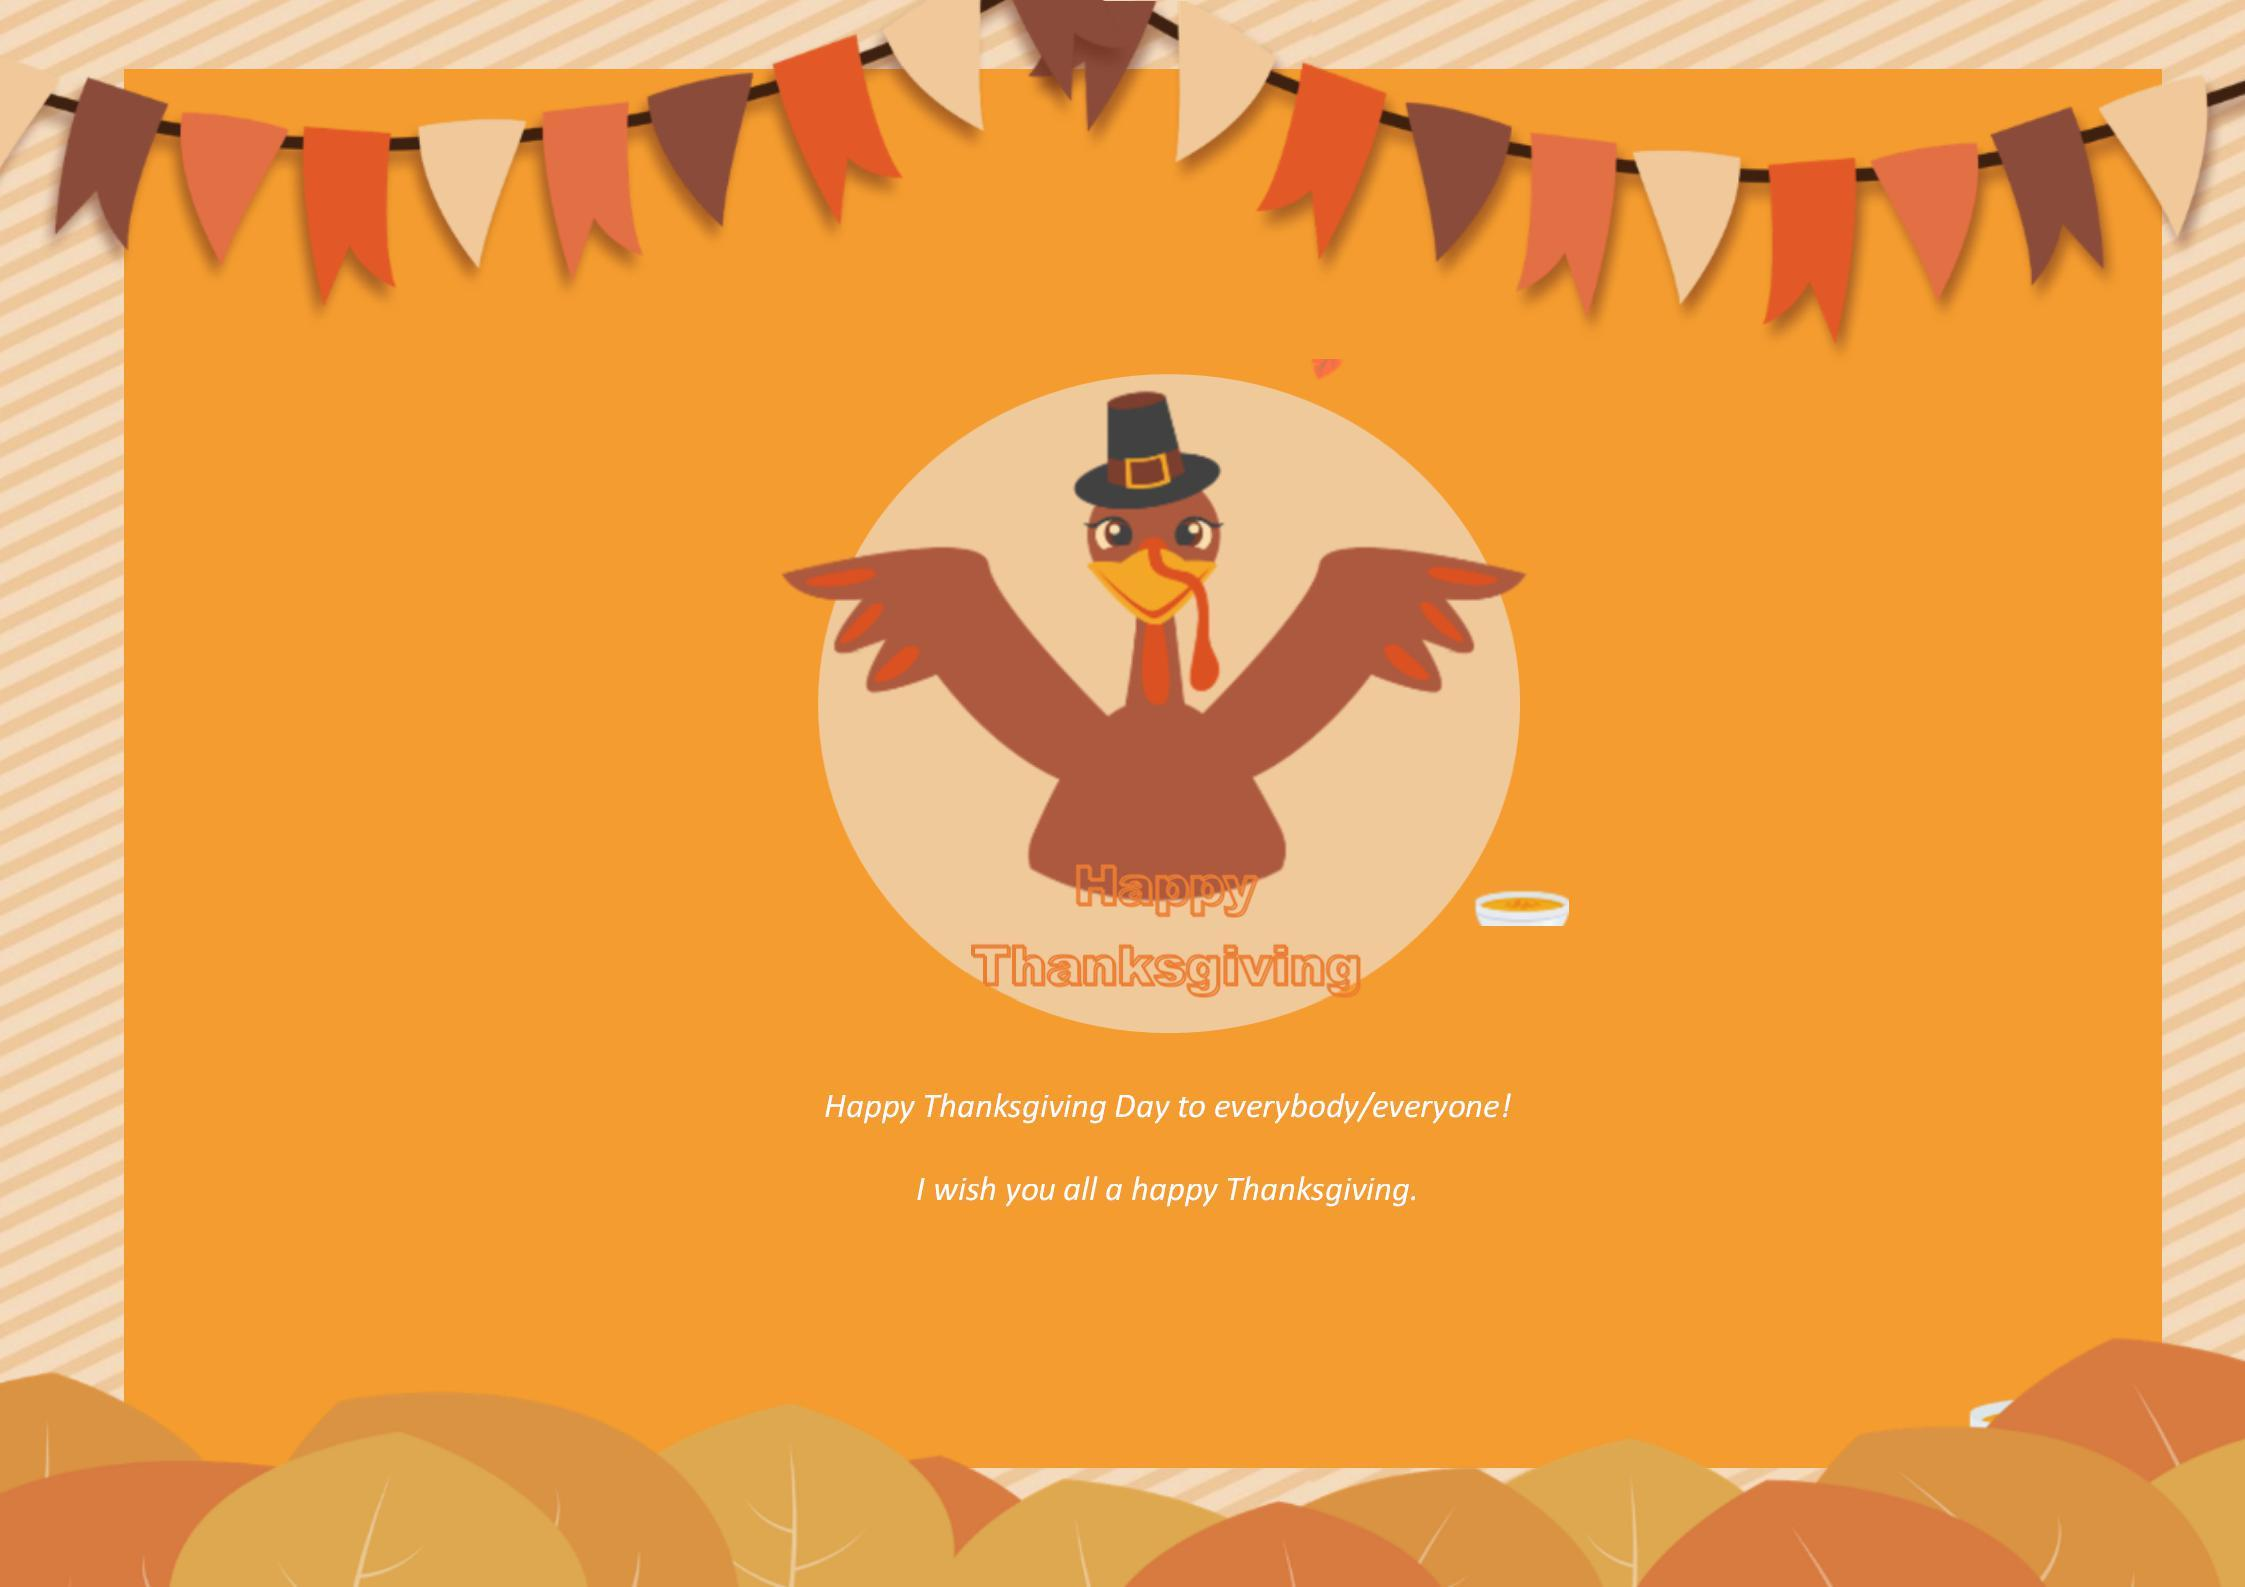 Thanksgiving Card Template Free from d4z1onkegyrs5.cloudfront.net